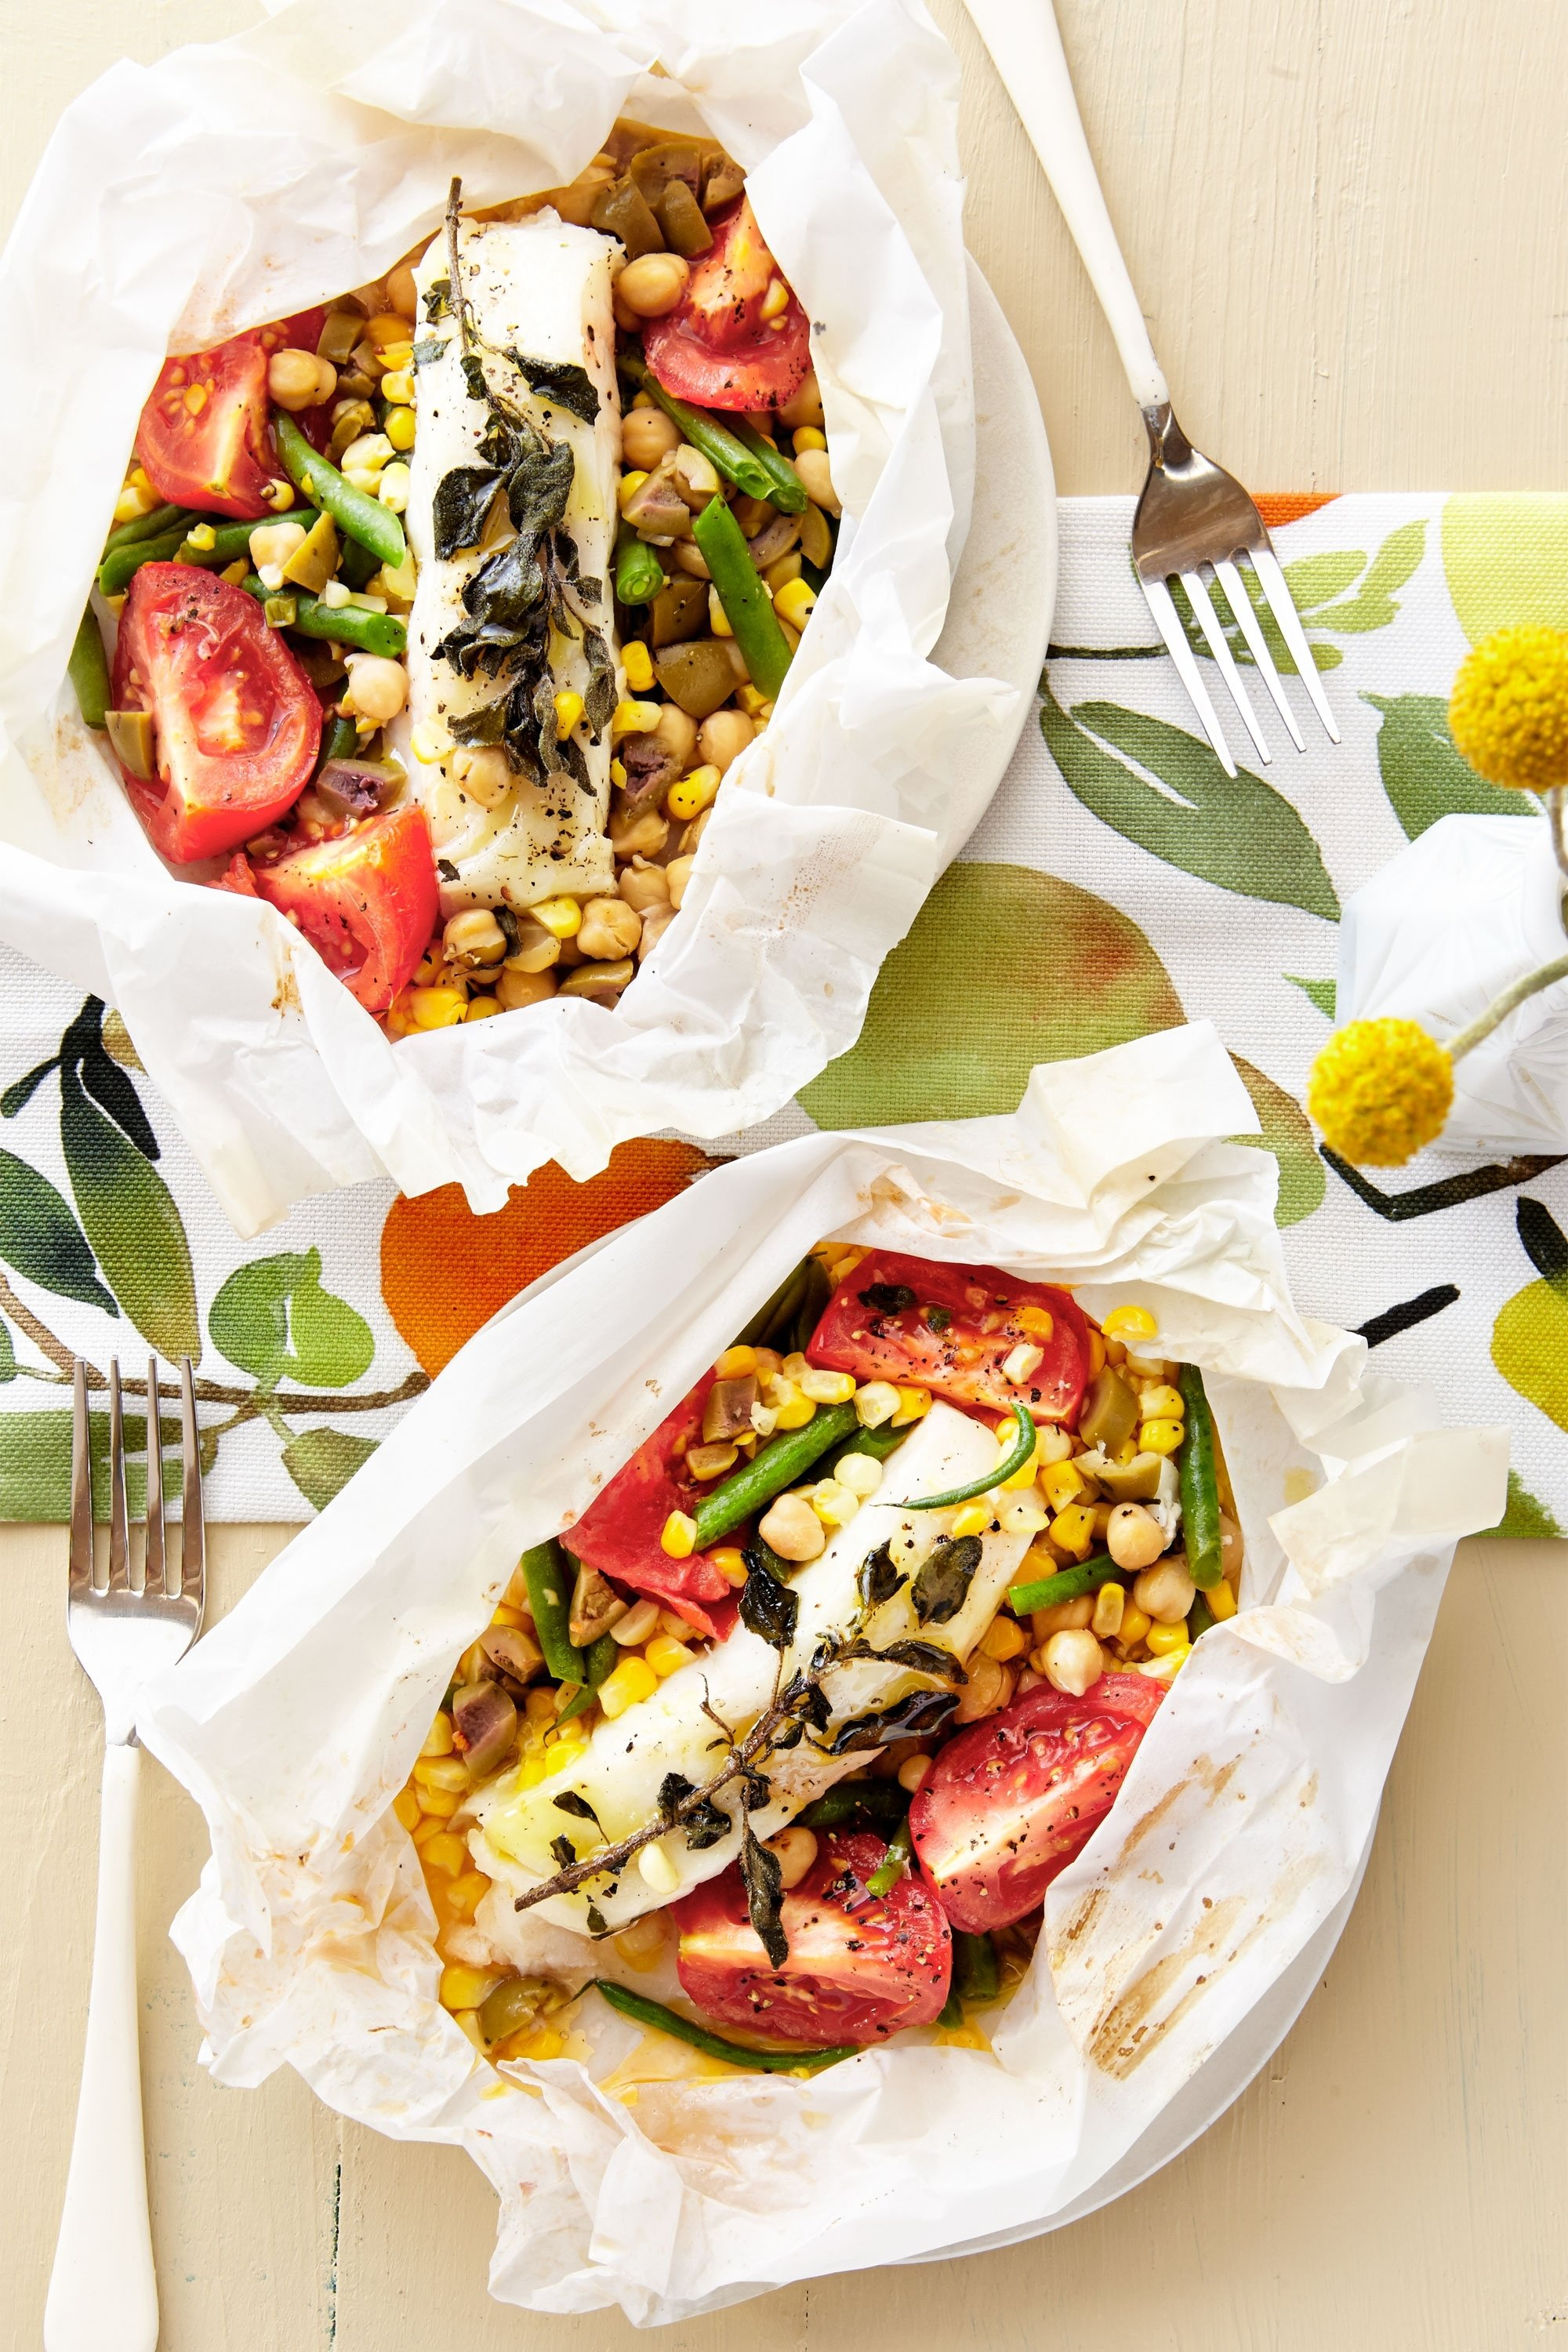 10 Pretty Quick And Easy Dinner Ideas For Two download easy dinner recipes ideas food photos 2 2020